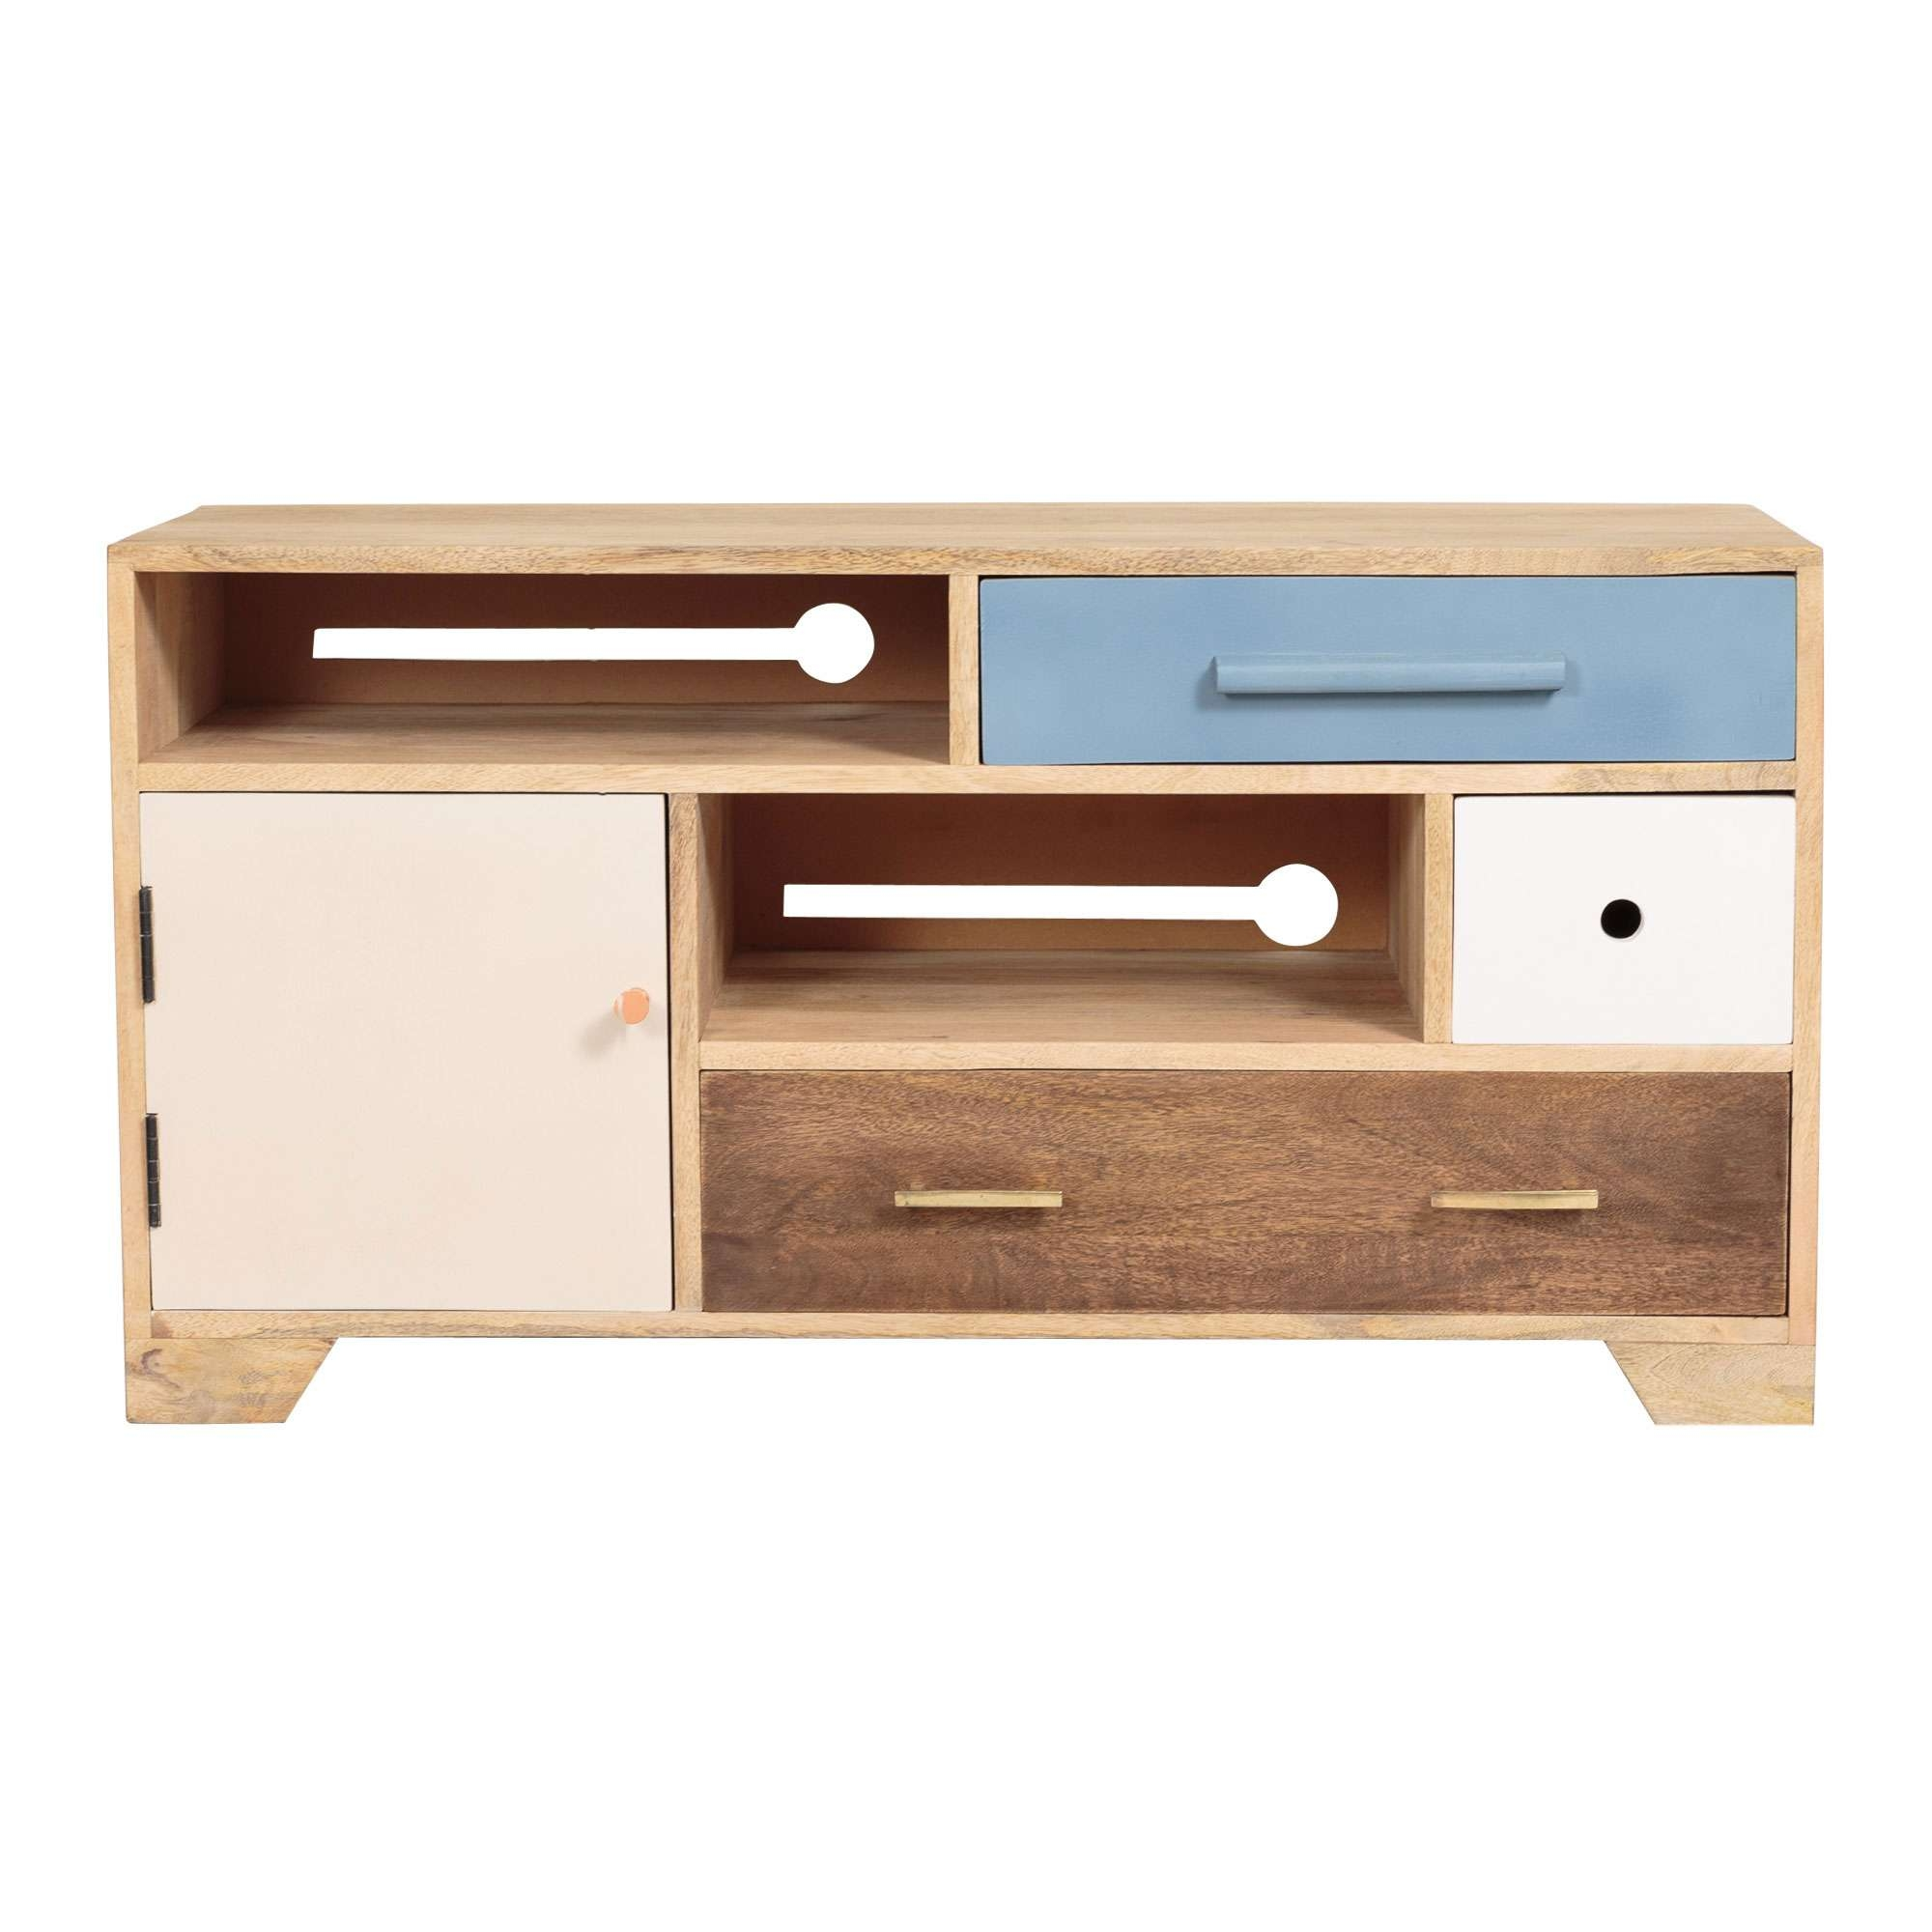 Jennifer Wooden Tv Cabinet | Oliver Bonas Inside Mango Wood Tv Cabinets (Gallery 14 of 20)